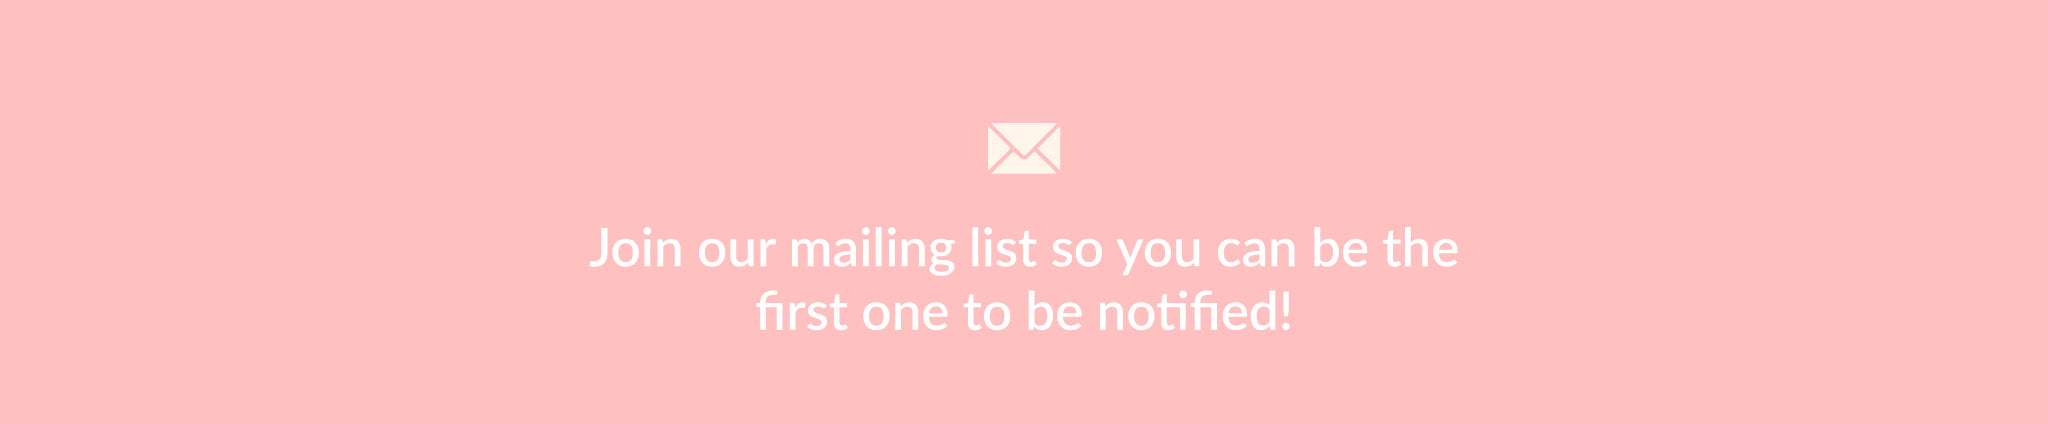 Join Our Mailing List for the Latest Promotions!